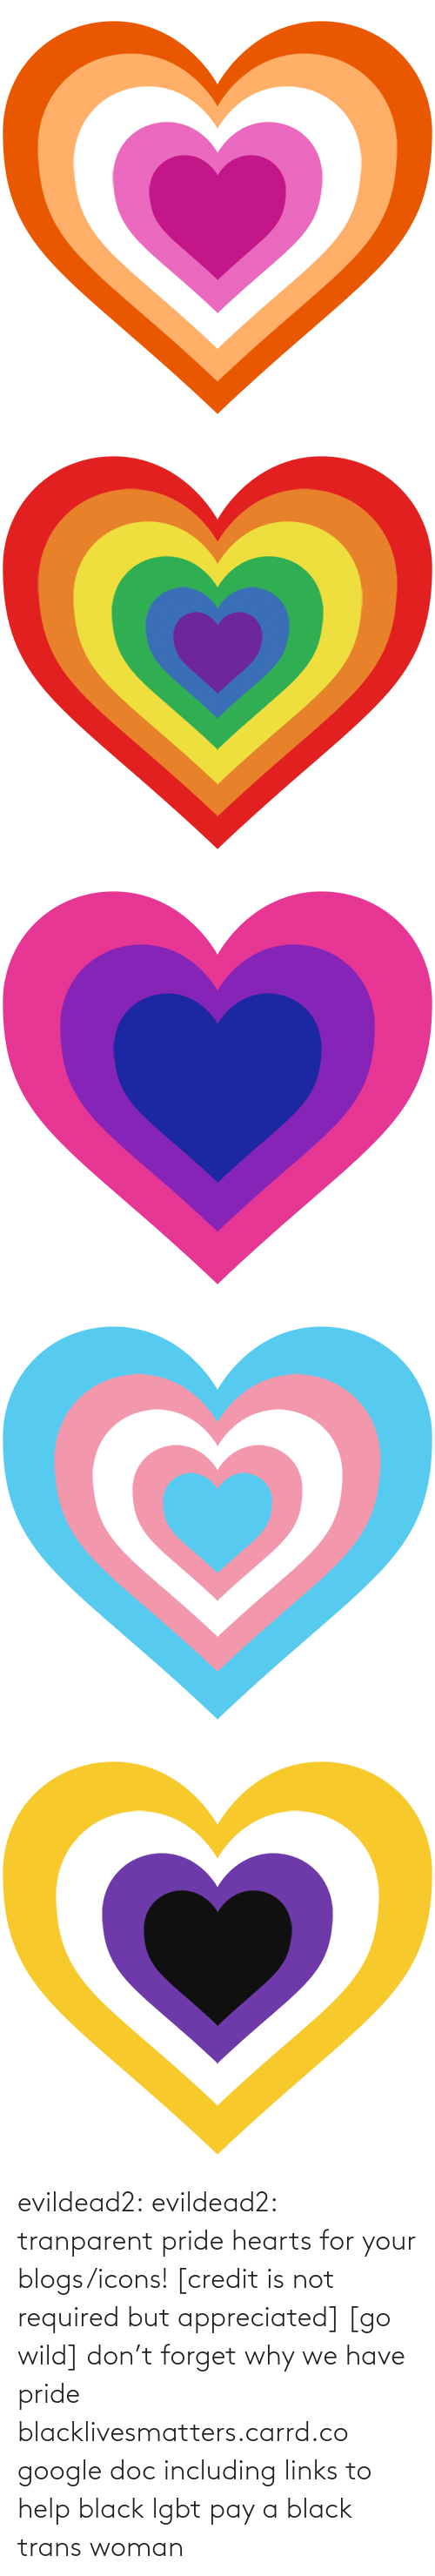 pride: evildead2:  evildead2:  tranparent pride hearts for your blogs/icons! [credit is not required but appreciated] [go wild]      don't forget why we have pride  blacklivesmatters.carrd.co  google doc including links to help black lgbt pay a black trans woman